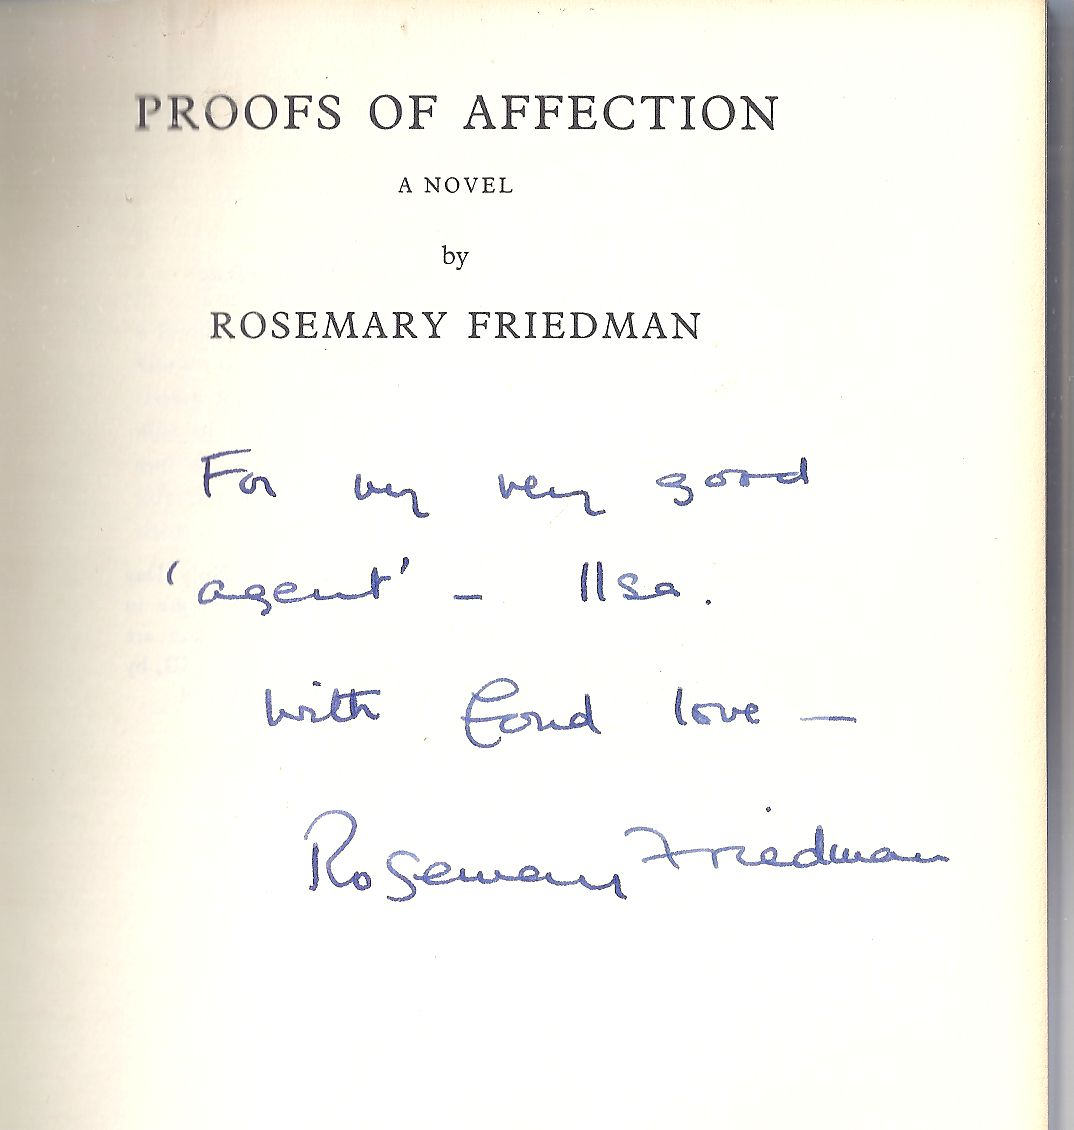 Image for Proofs of Affection [signed copy]